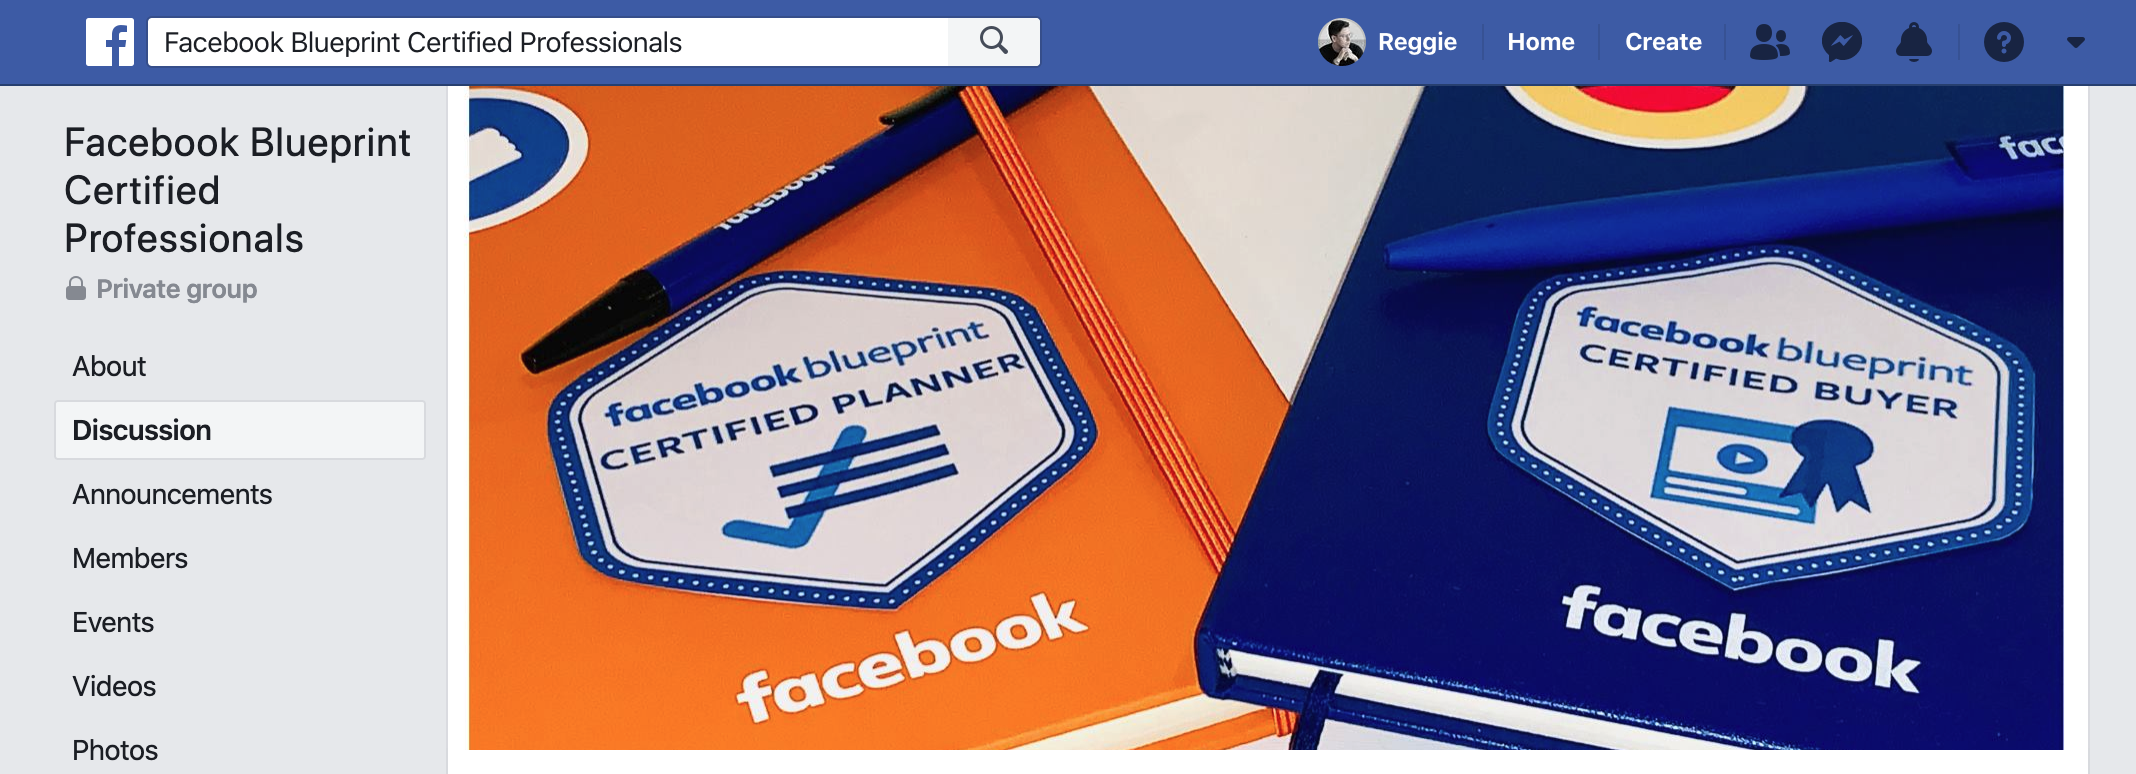 Facebook Blueprint Certification Professionals Facebook Group